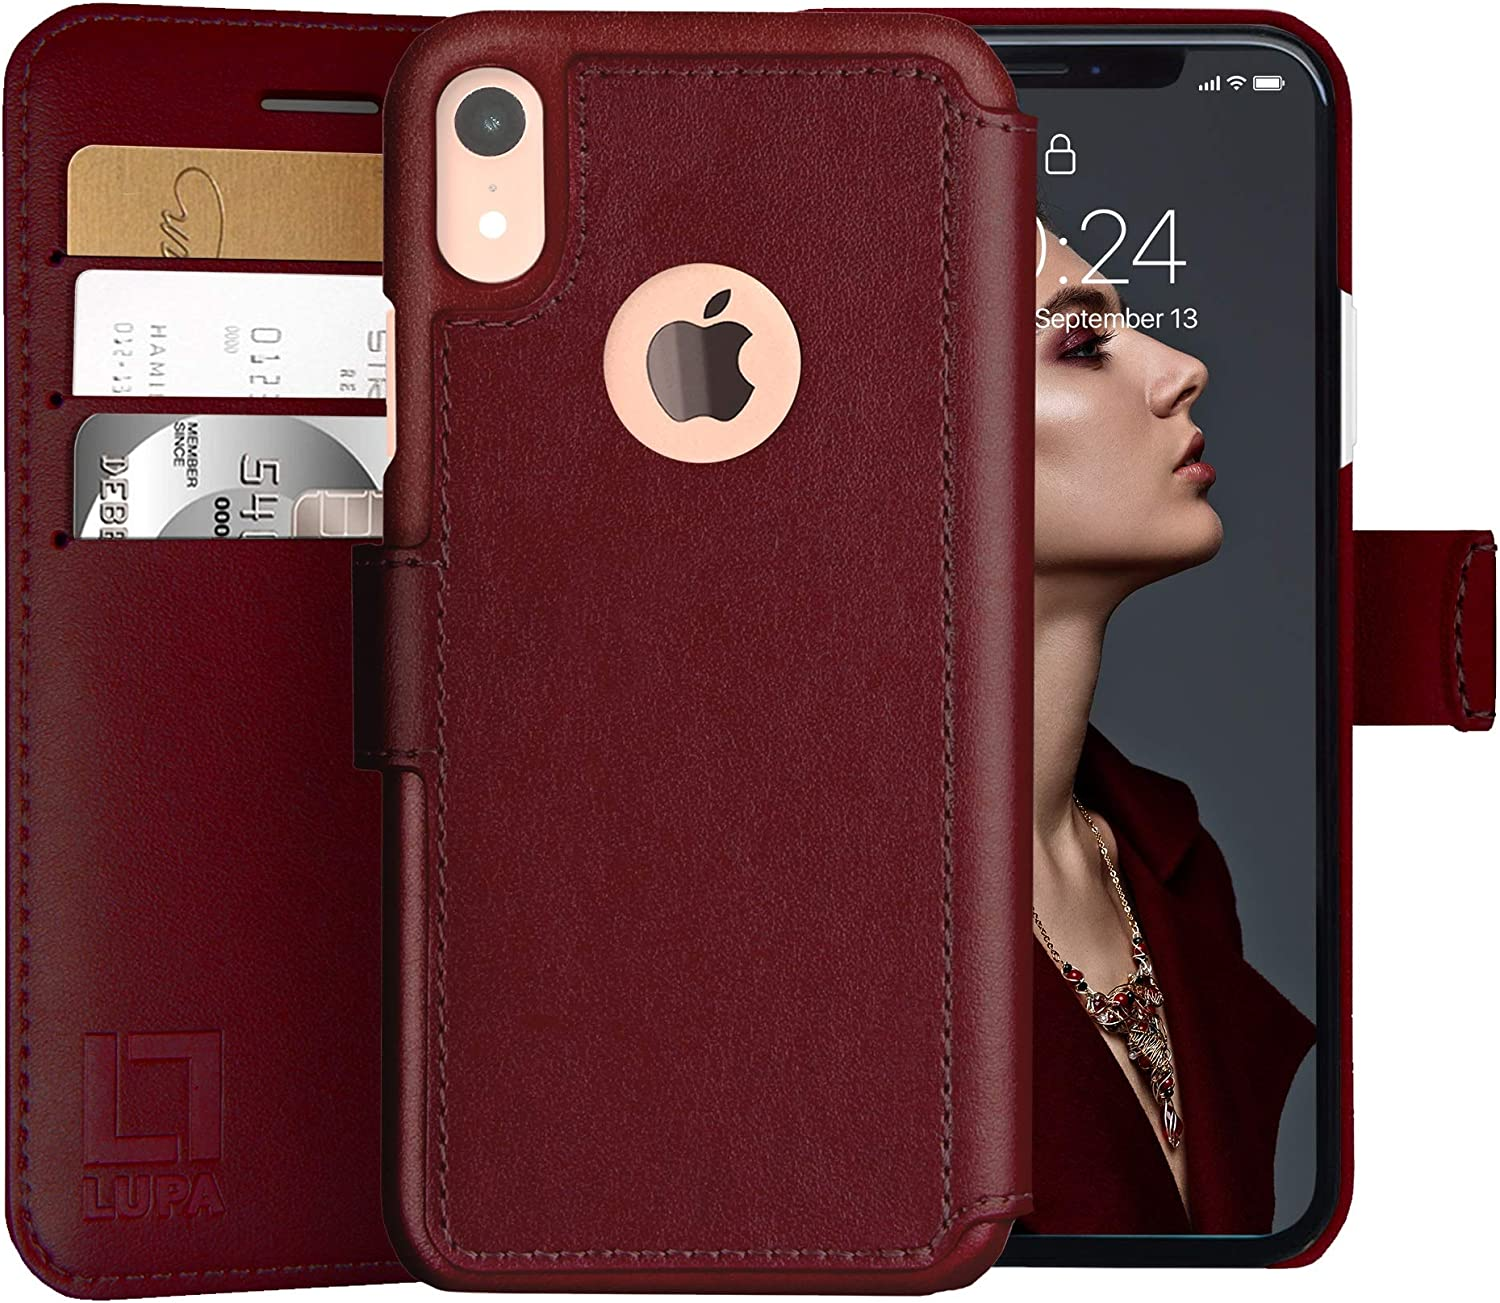 LUPA iPhone XR Wallet case, Durable and Slim, Lightweight, Magnetic Closure, Faux Leather, Burgundy, iPhone XR Case with Card Holder (6.1 Inch Screen)